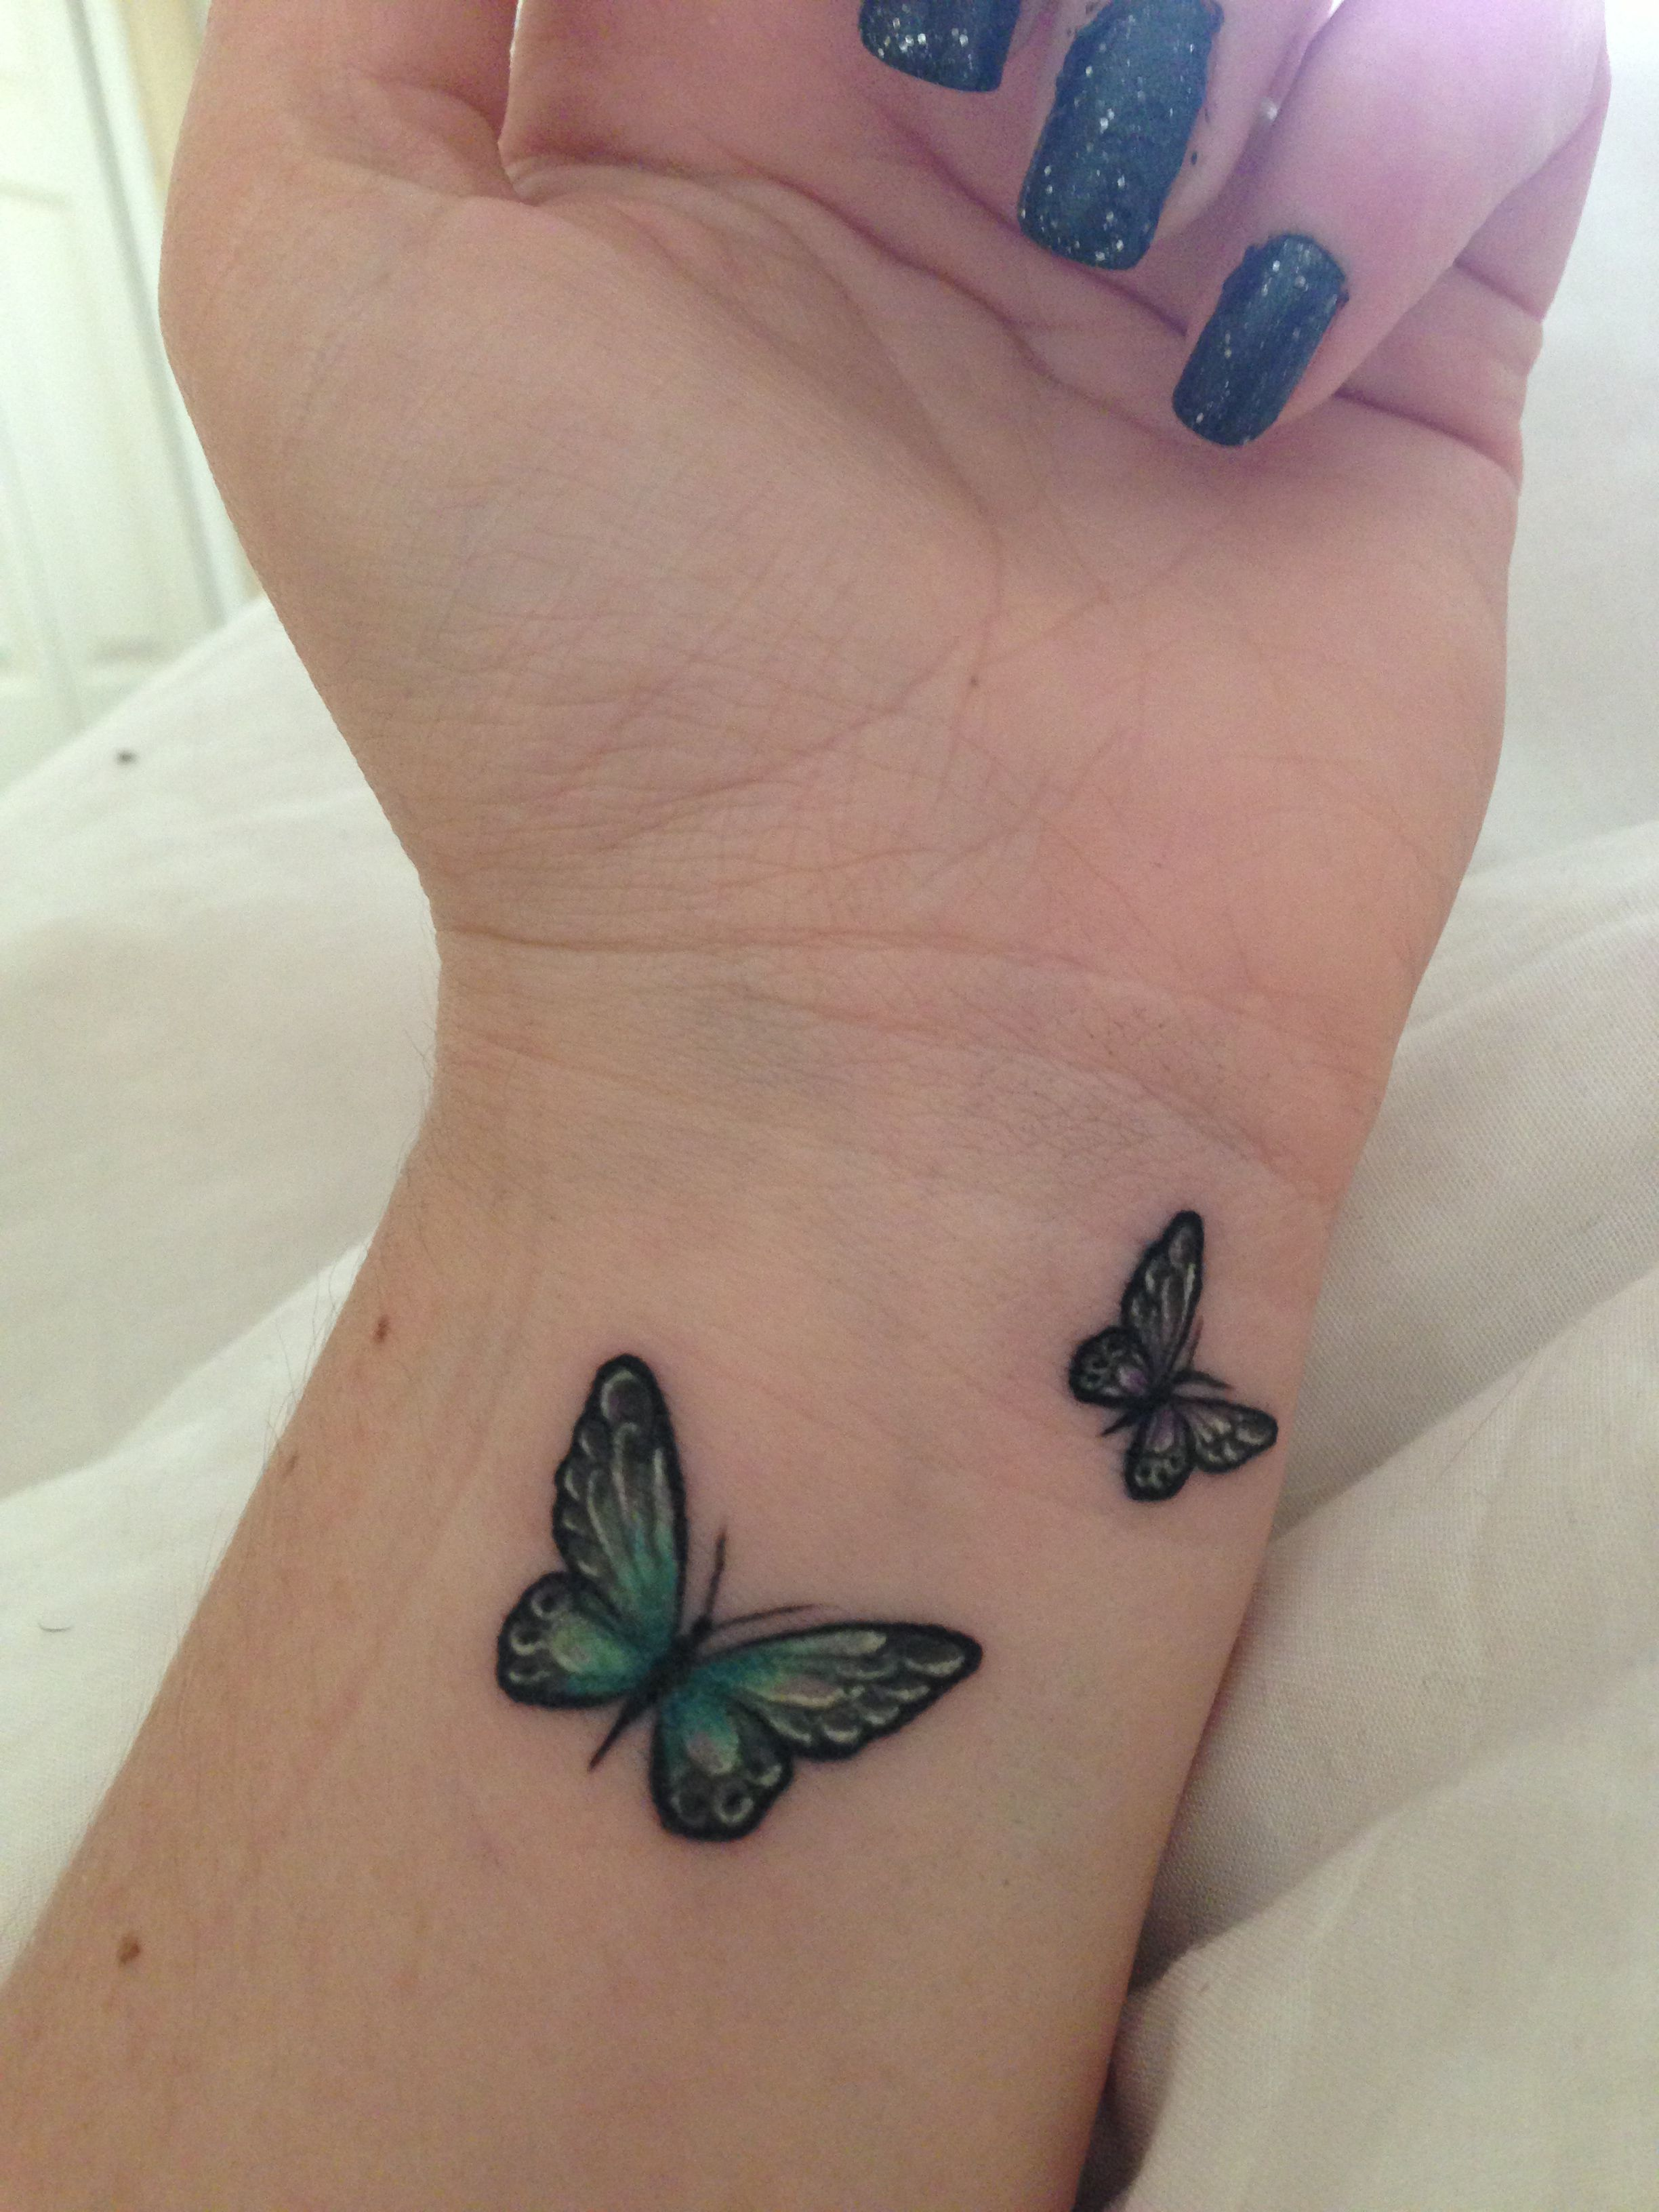 25 Small Tribal Tattoos On Wrist | Butterfly wrist tattoo ...